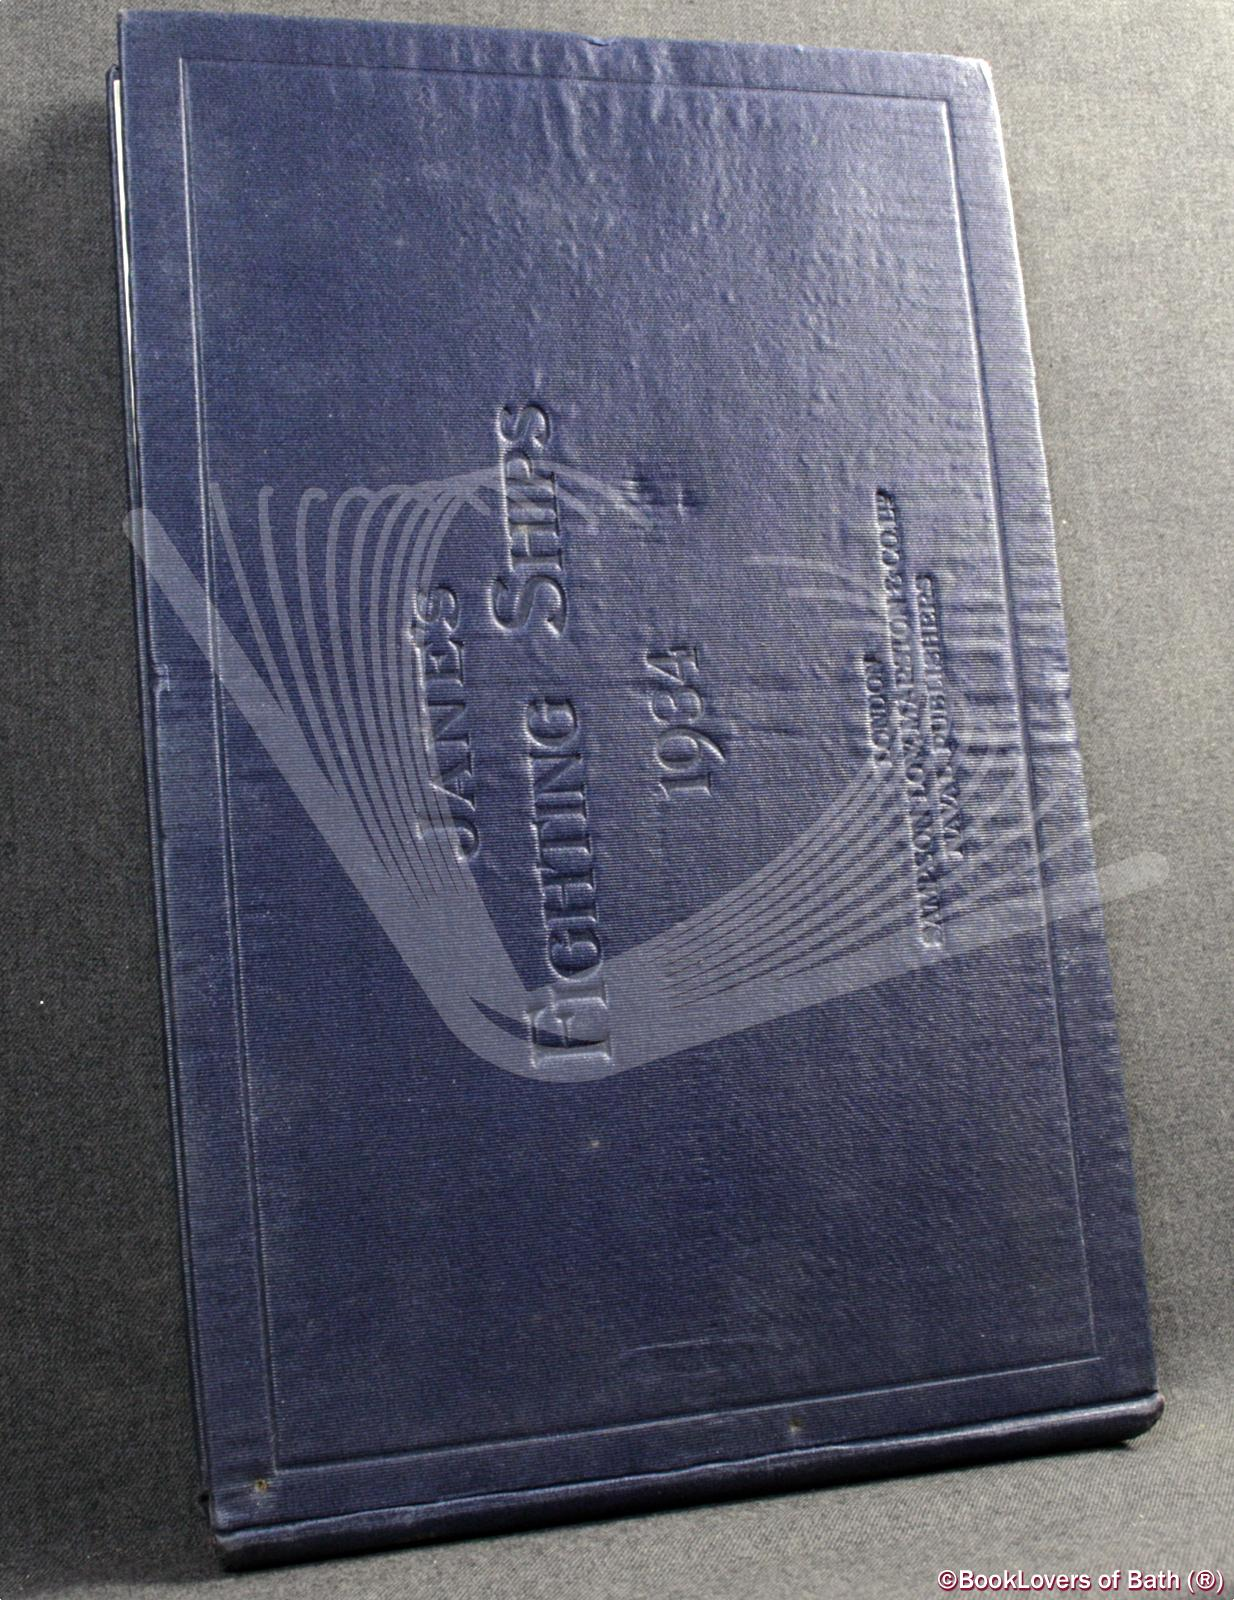 Jane's Fighting Ships 1934 - Edited by Oscar Parkes